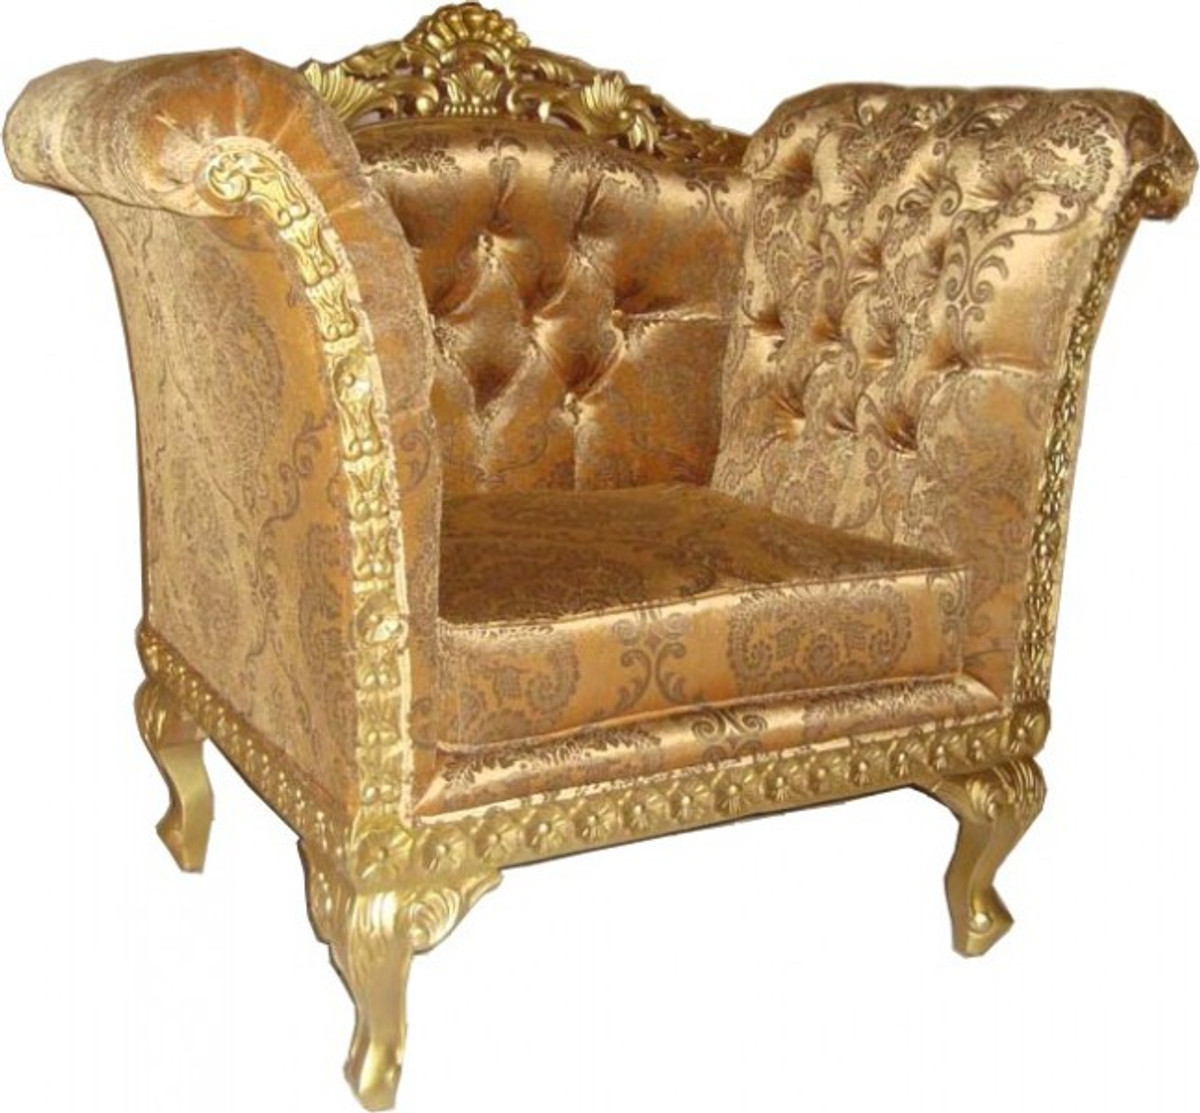 casa padrino barock lounge sessel gold muster gold m bel. Black Bedroom Furniture Sets. Home Design Ideas